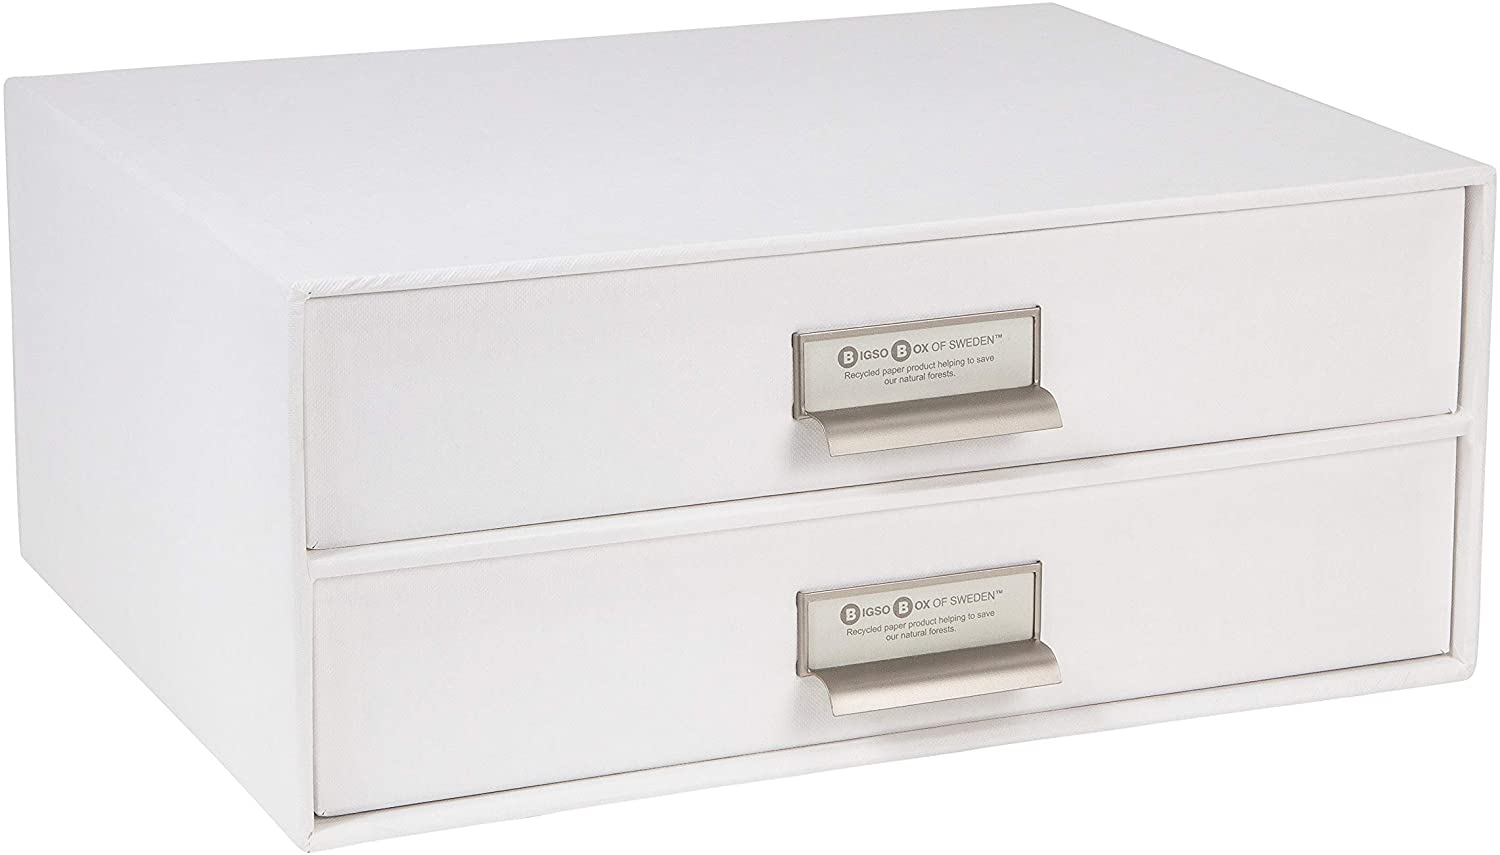 Bigso Birger 2-Drawer Fiberboard Label Frame Document Letter Box, 5.7 x 13 x 9.8 in, White